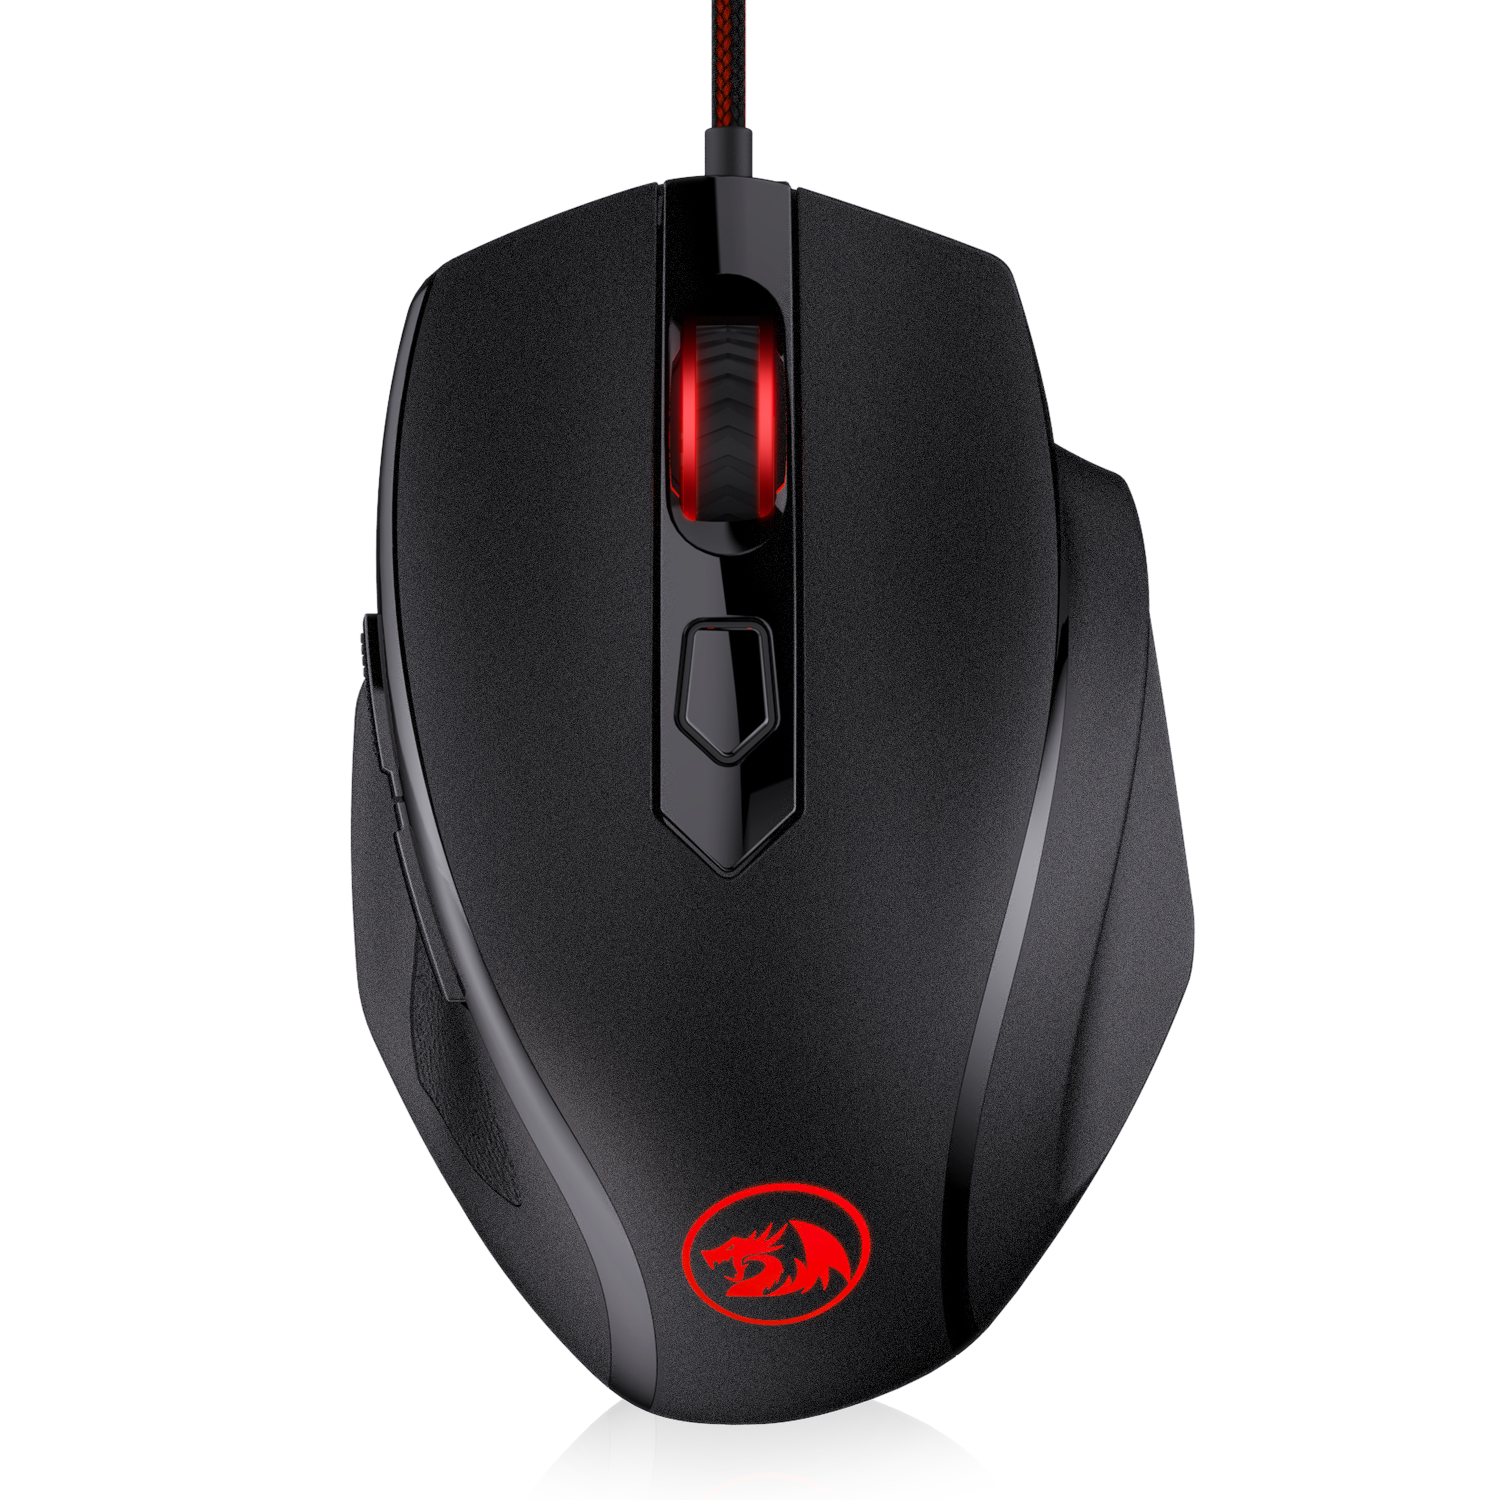 Redragon M709-1 Tiger2 Red LED Gaming Mouse, 3200 DPI Wired Optical Gamer Mouse With Precision Actuation, 5 Programmable Buttons